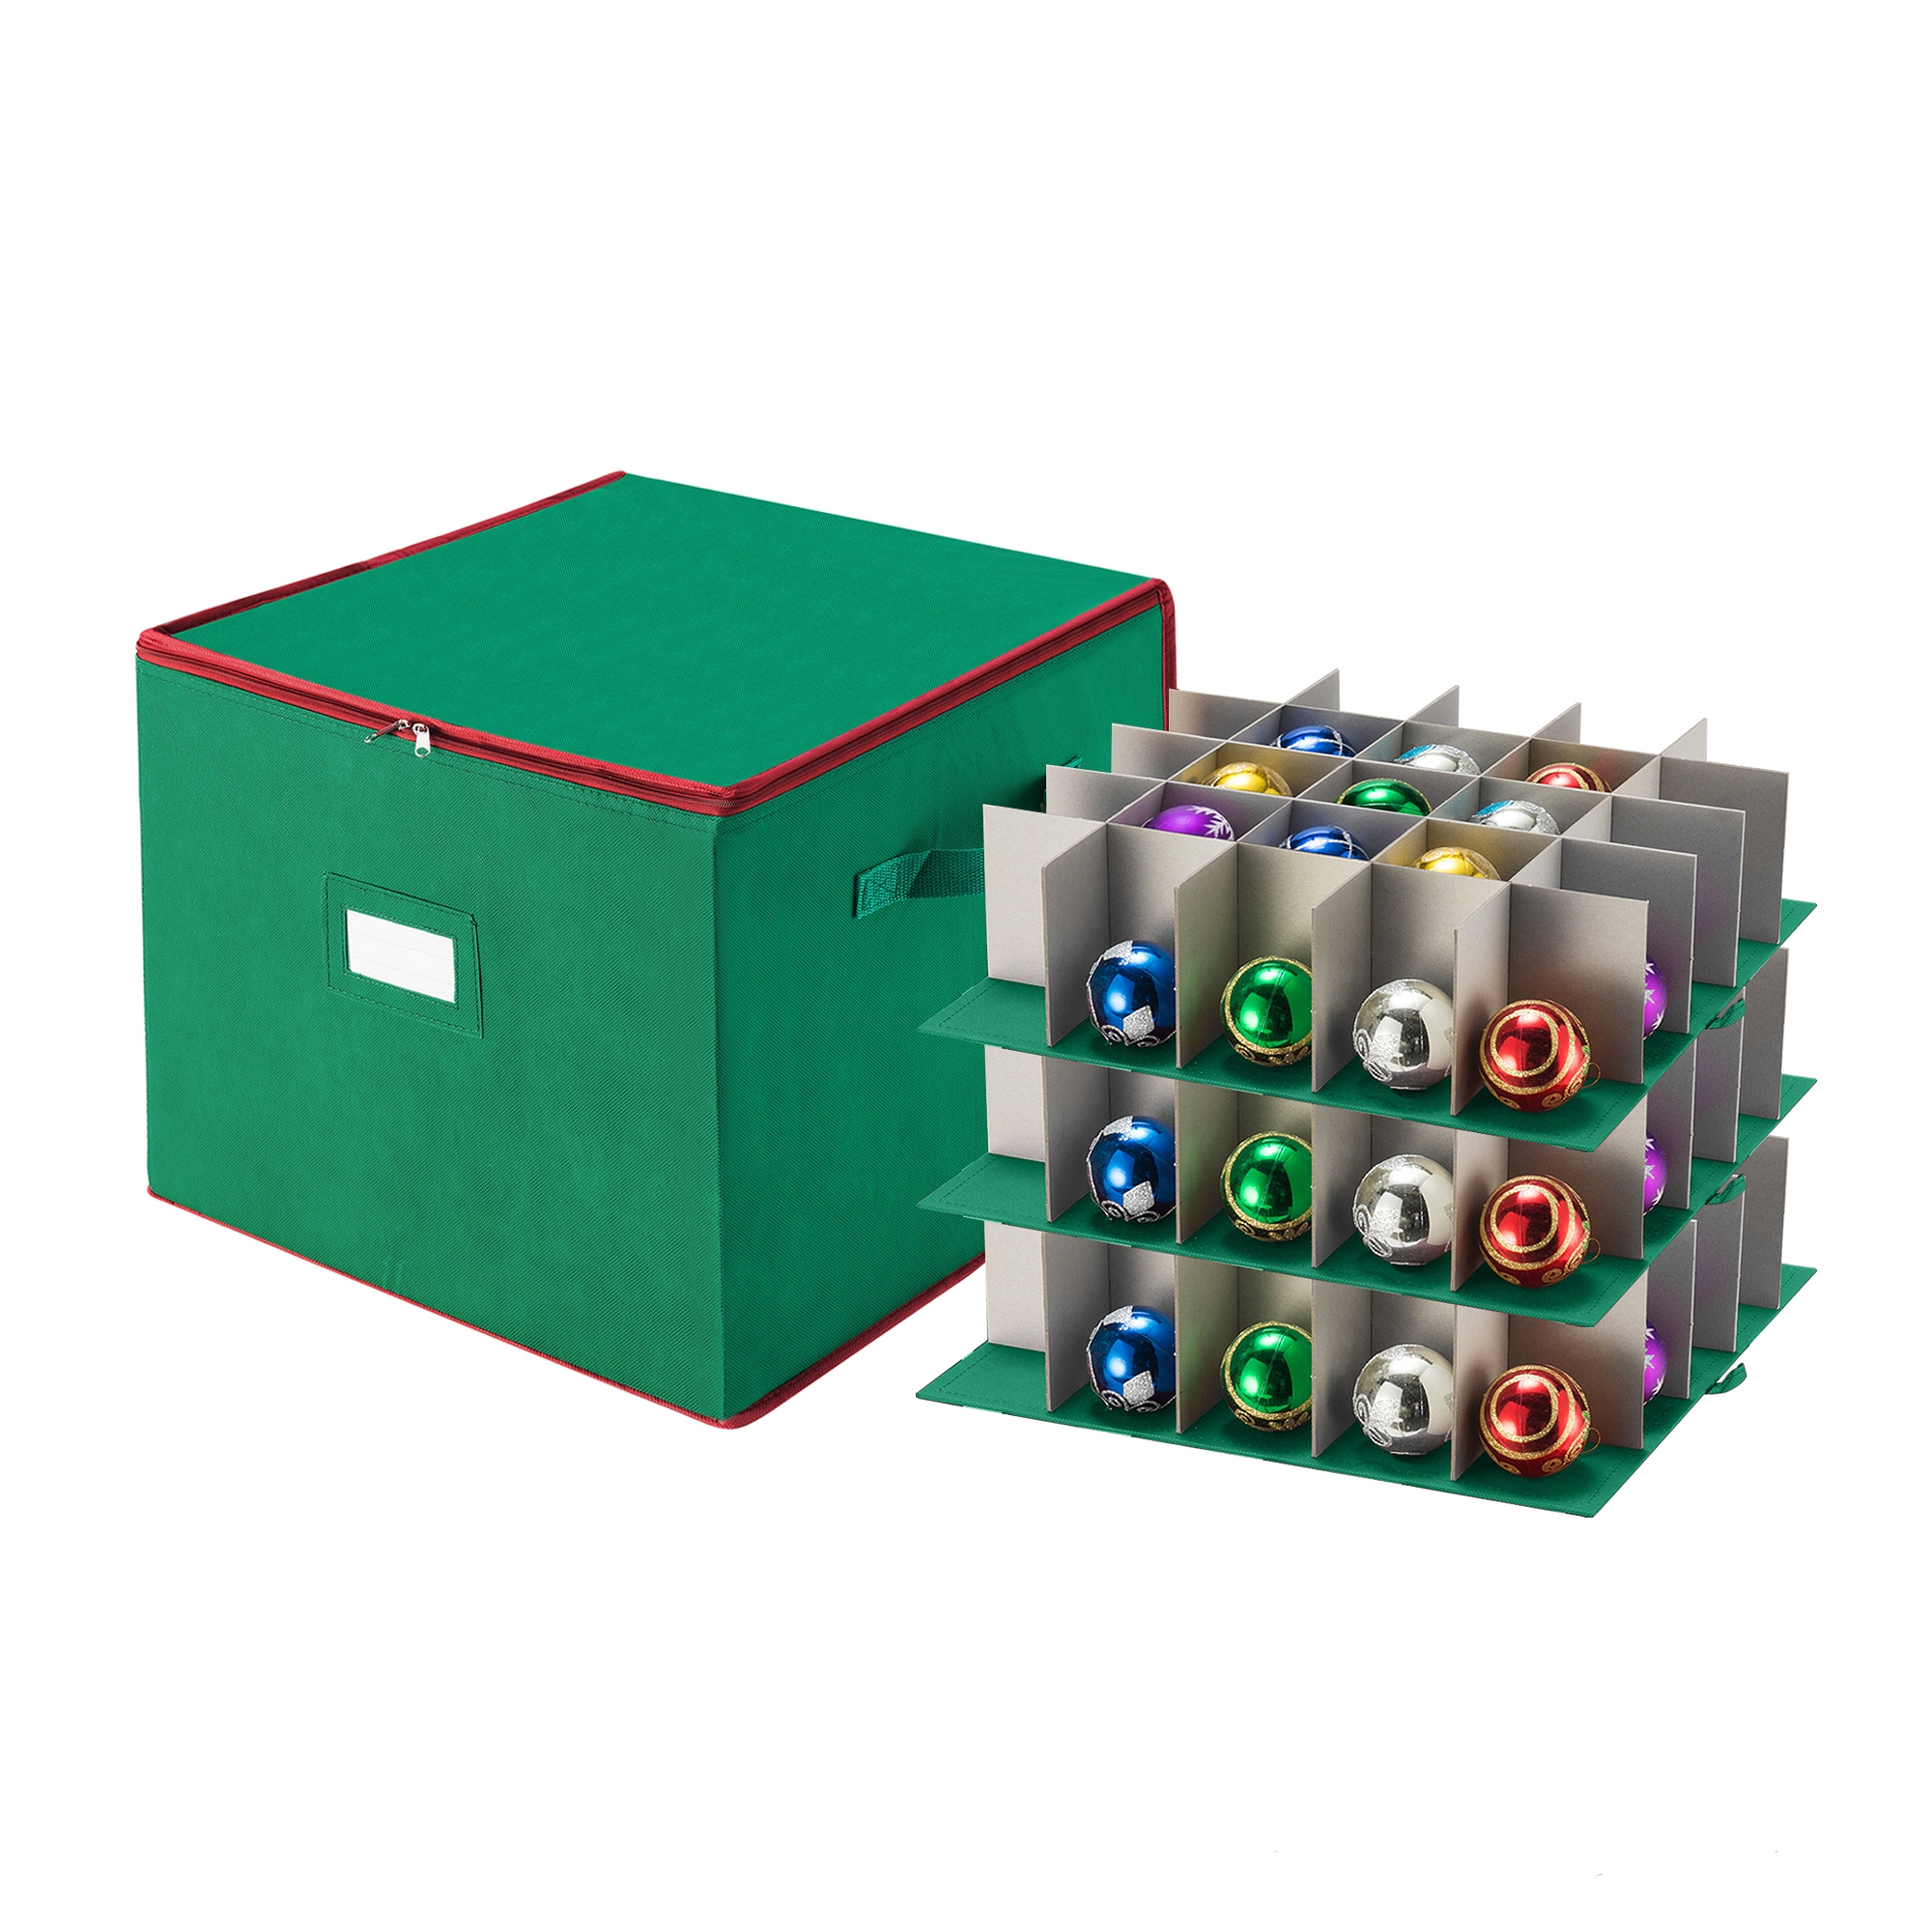 Tiny Tim Totes Christmas Ornament Storage Chest Holds 75 Balls w/ Dividers Green